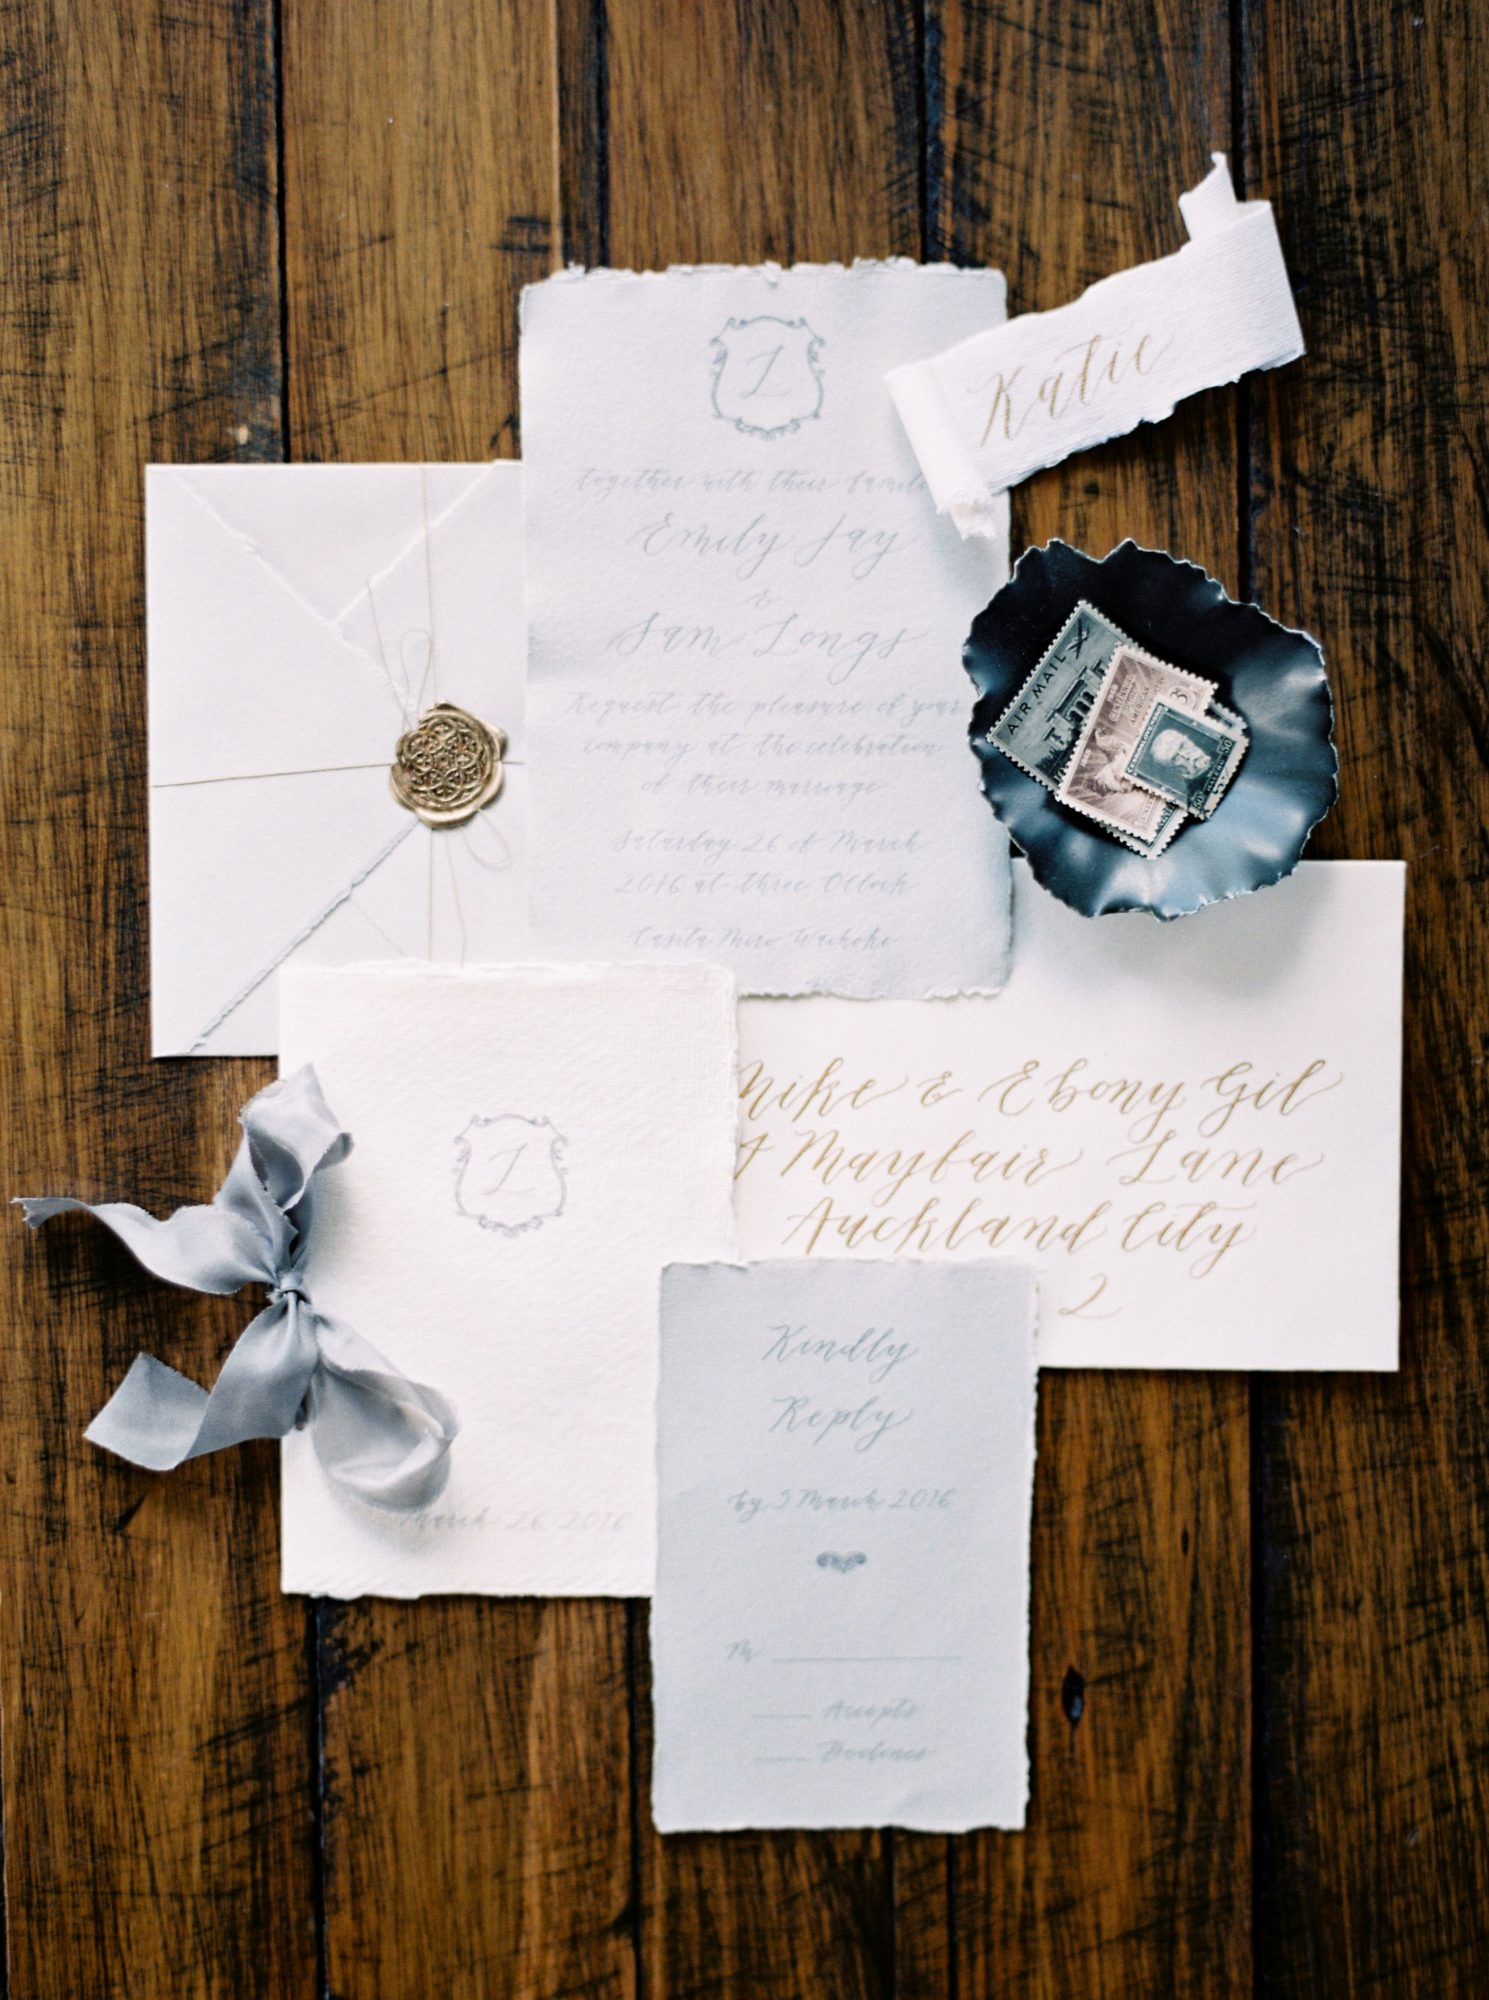 deckle edge invitations when he found her